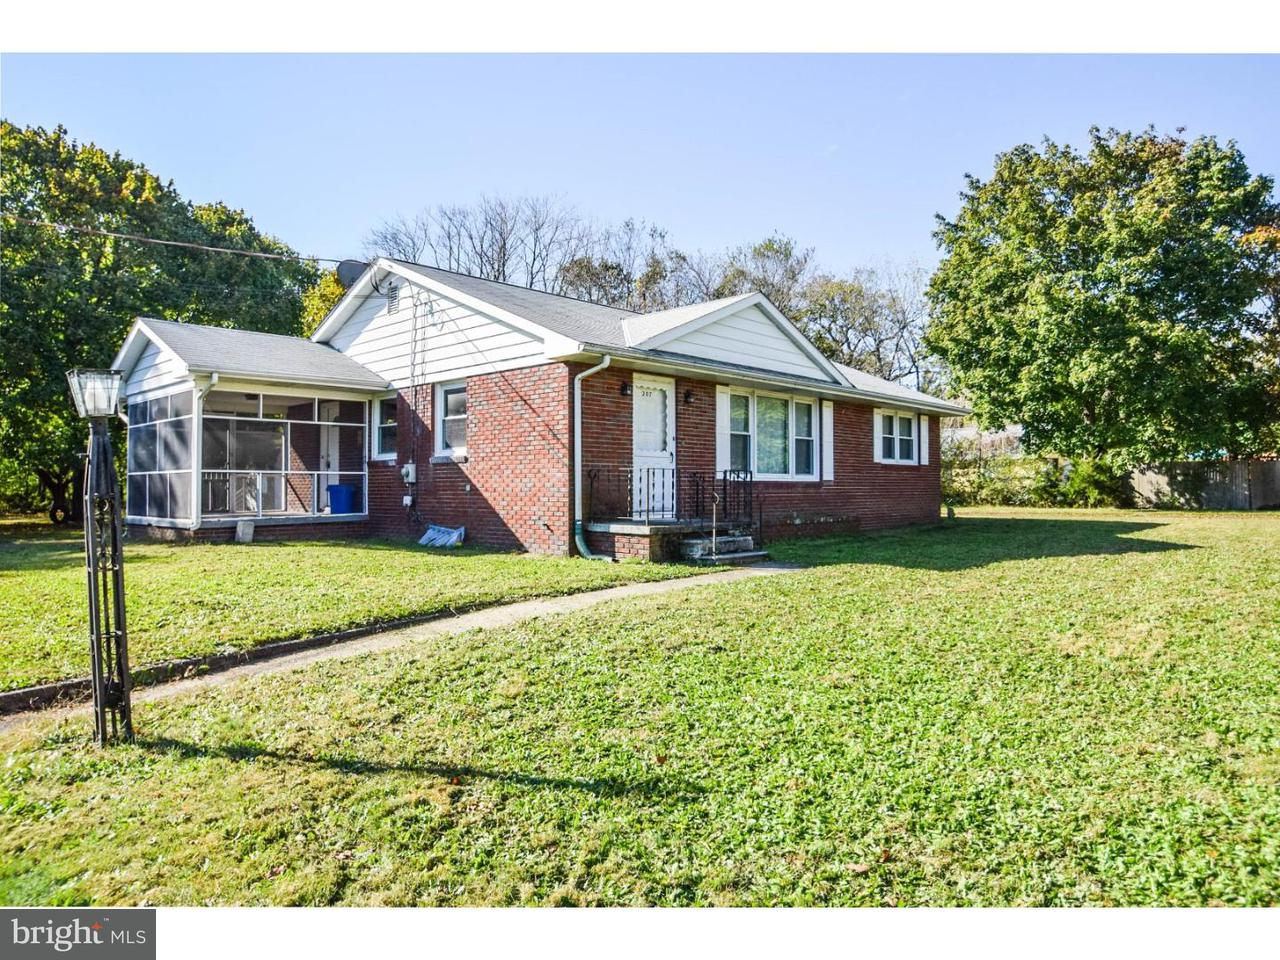 Single Family Home for Sale at 207 E PACIFIC Avenue Minotola, New Jersey 08341 United States